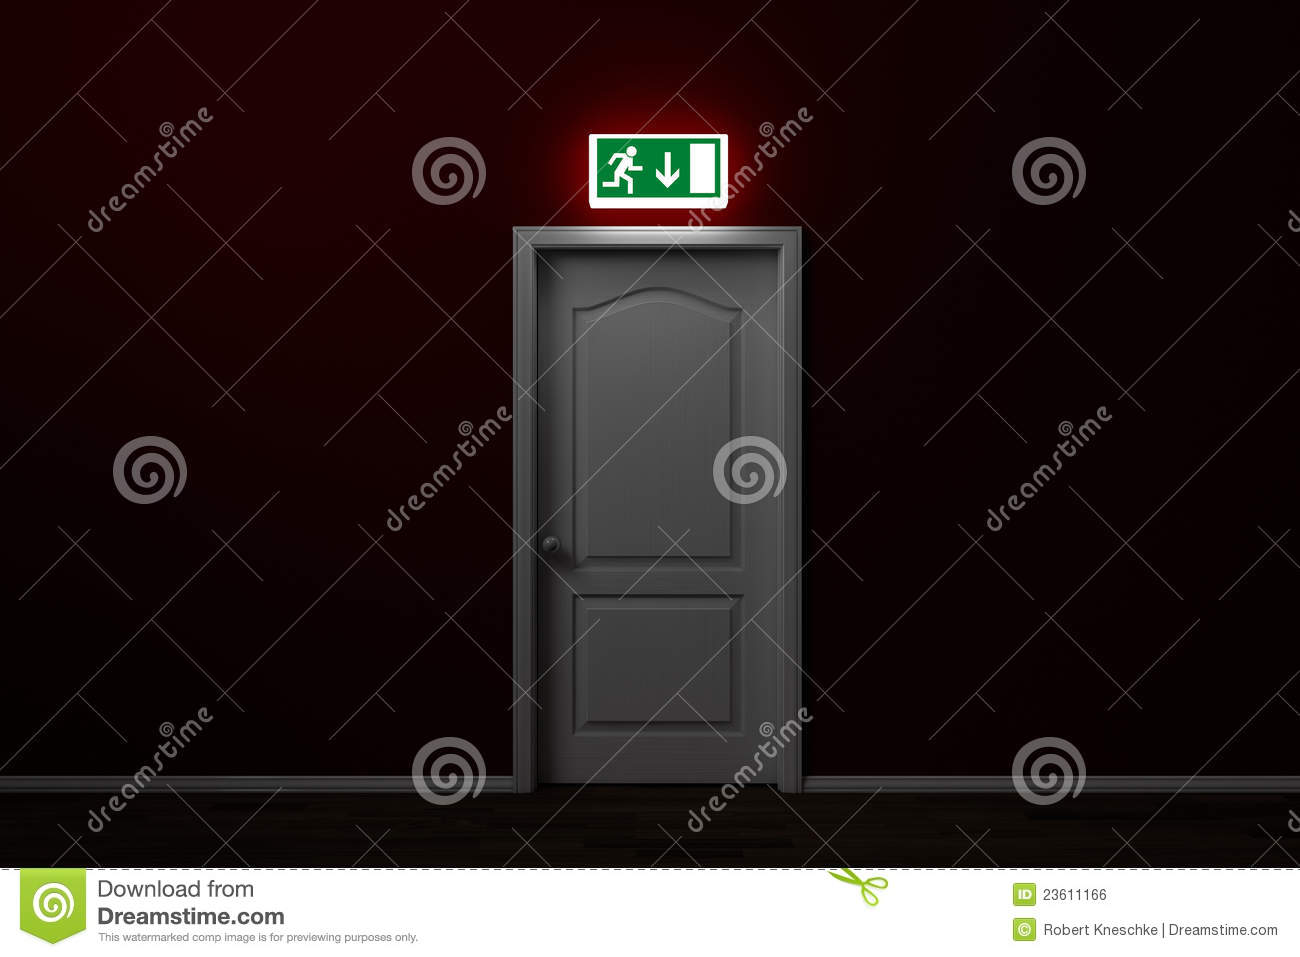 Emergency Exit With Sign Over Door Royalty Free Stock